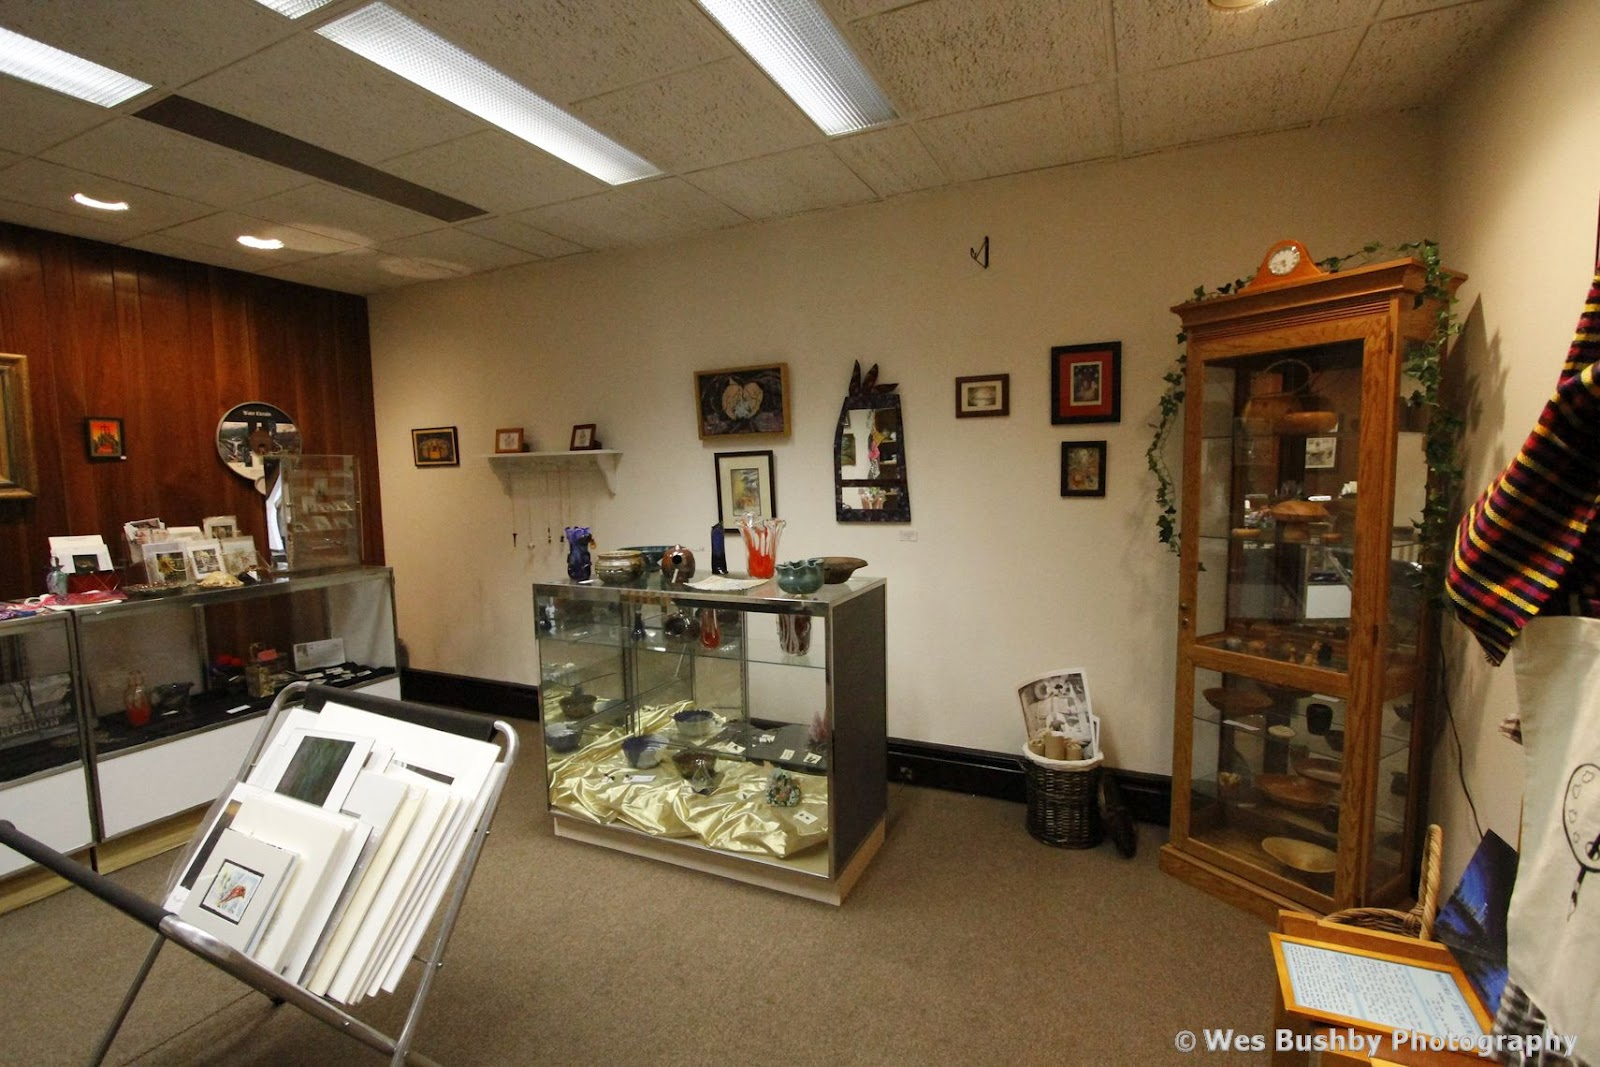 Everything you need seems to be within walking distance. The main street, 119th, always seems to be bustling with business of some kind. The CornerStone Art ...